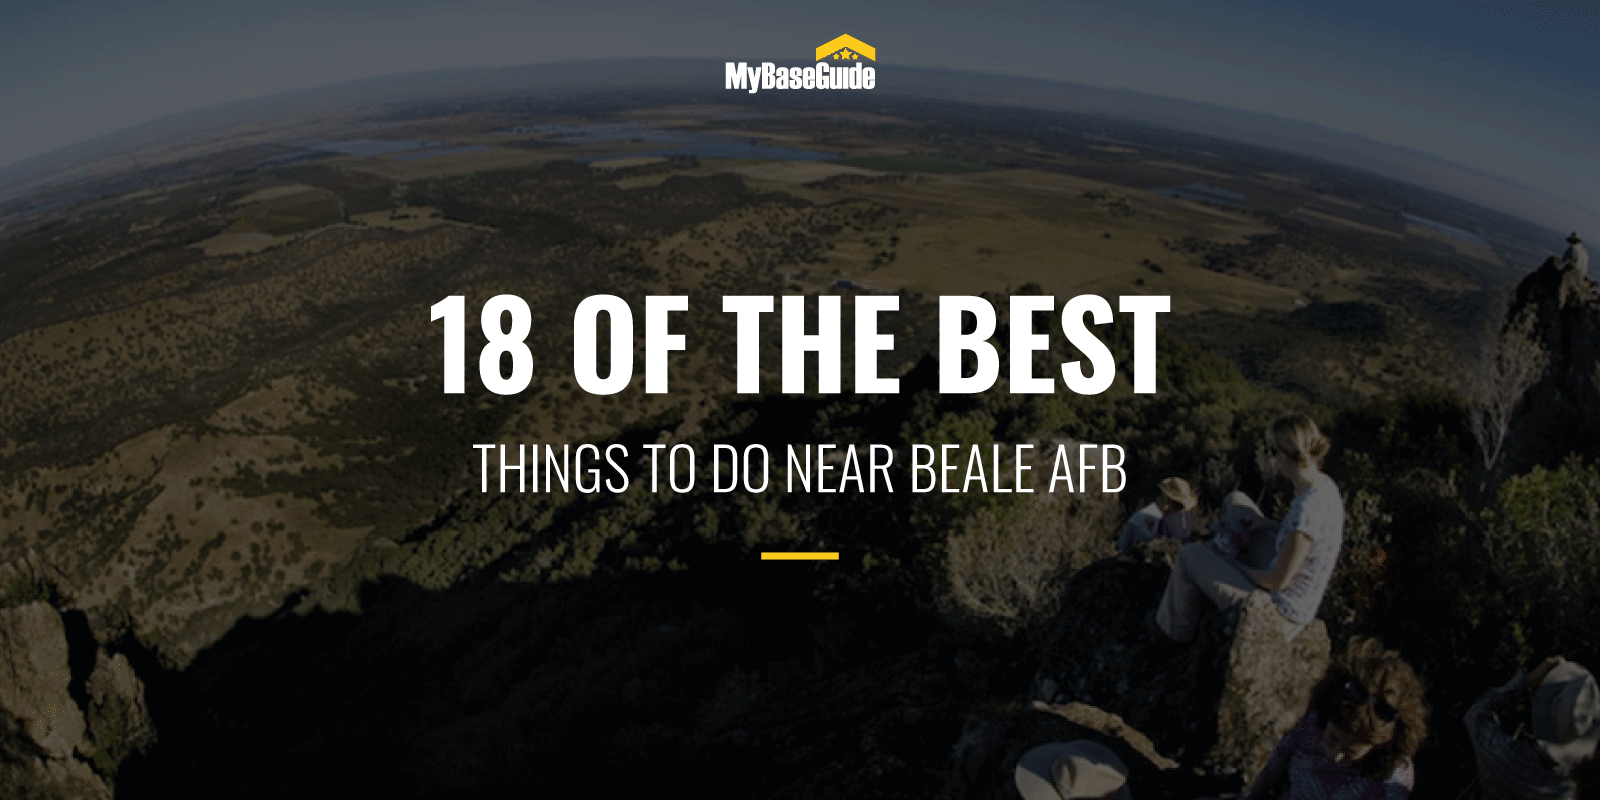 18 Of the Best Things to Do Near Beale AFB